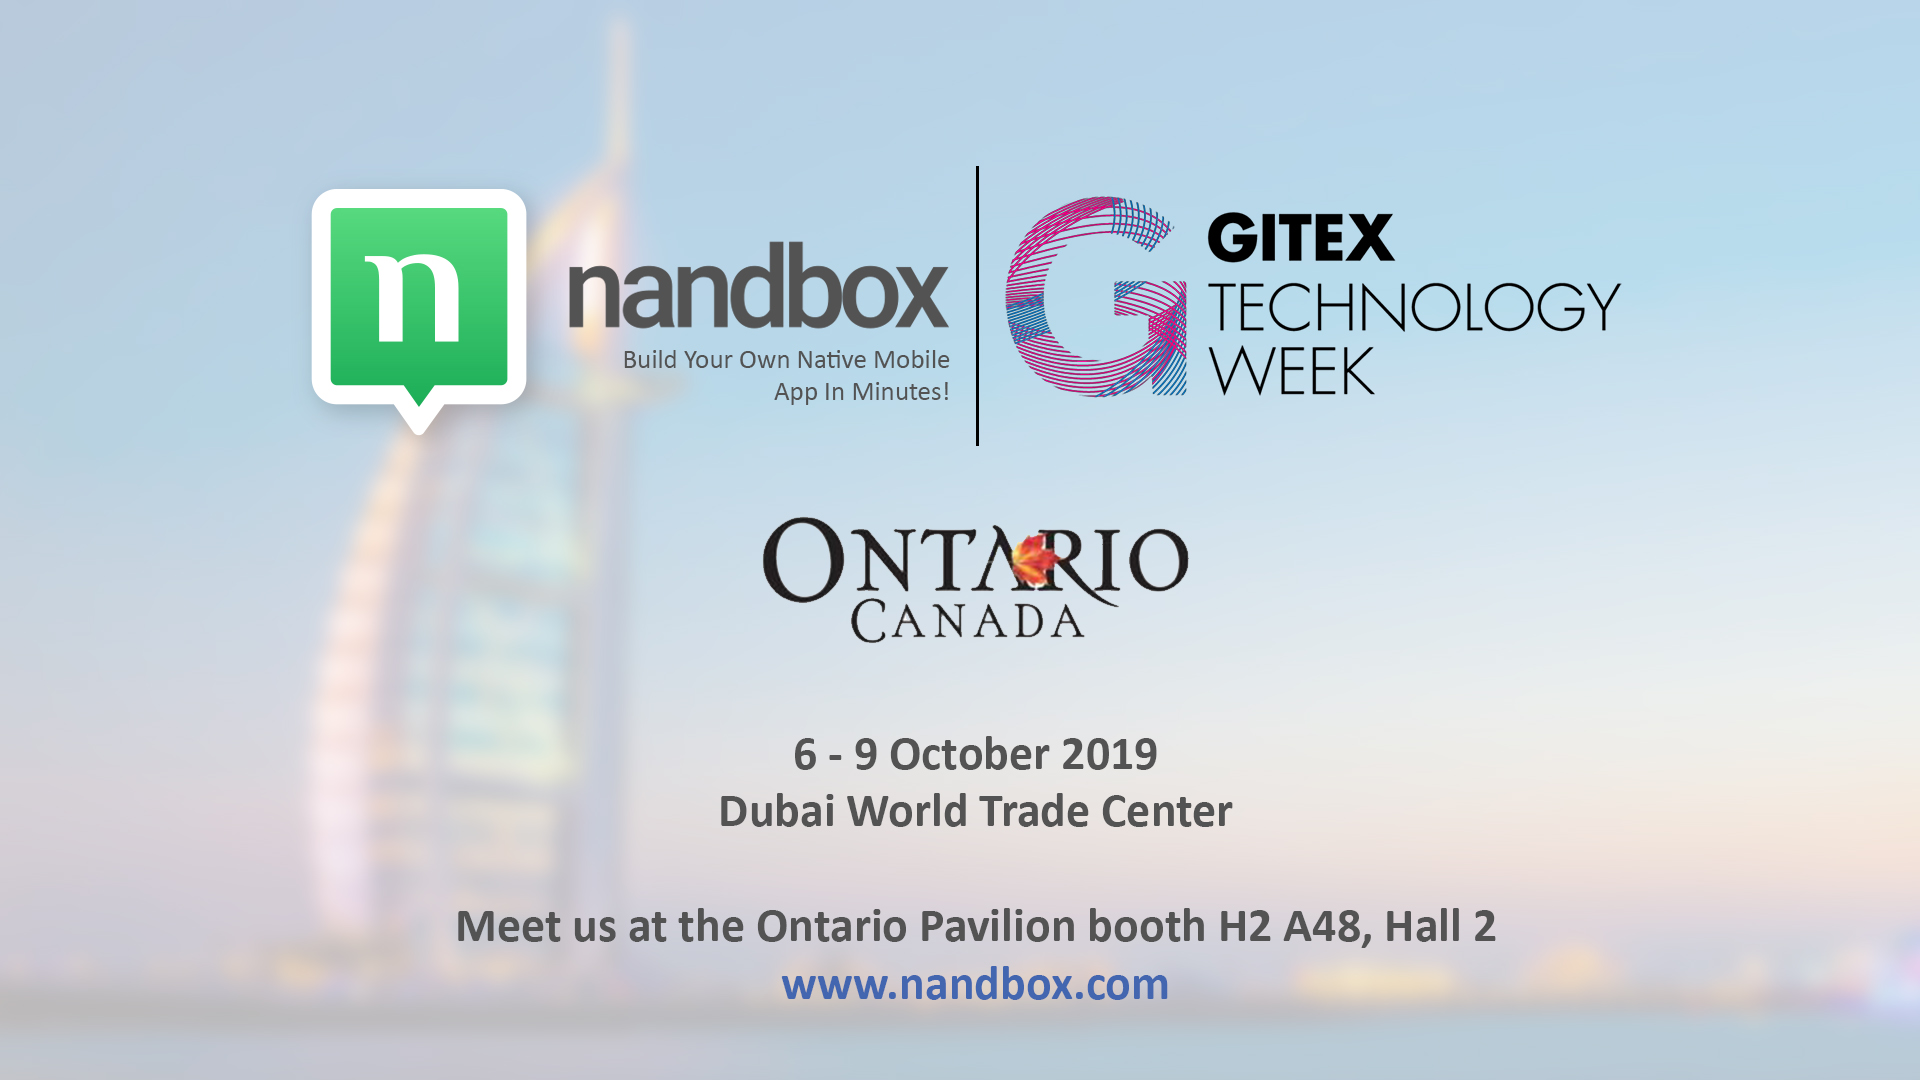 Nandbox Exhibits at GITEX Technology Week 2019